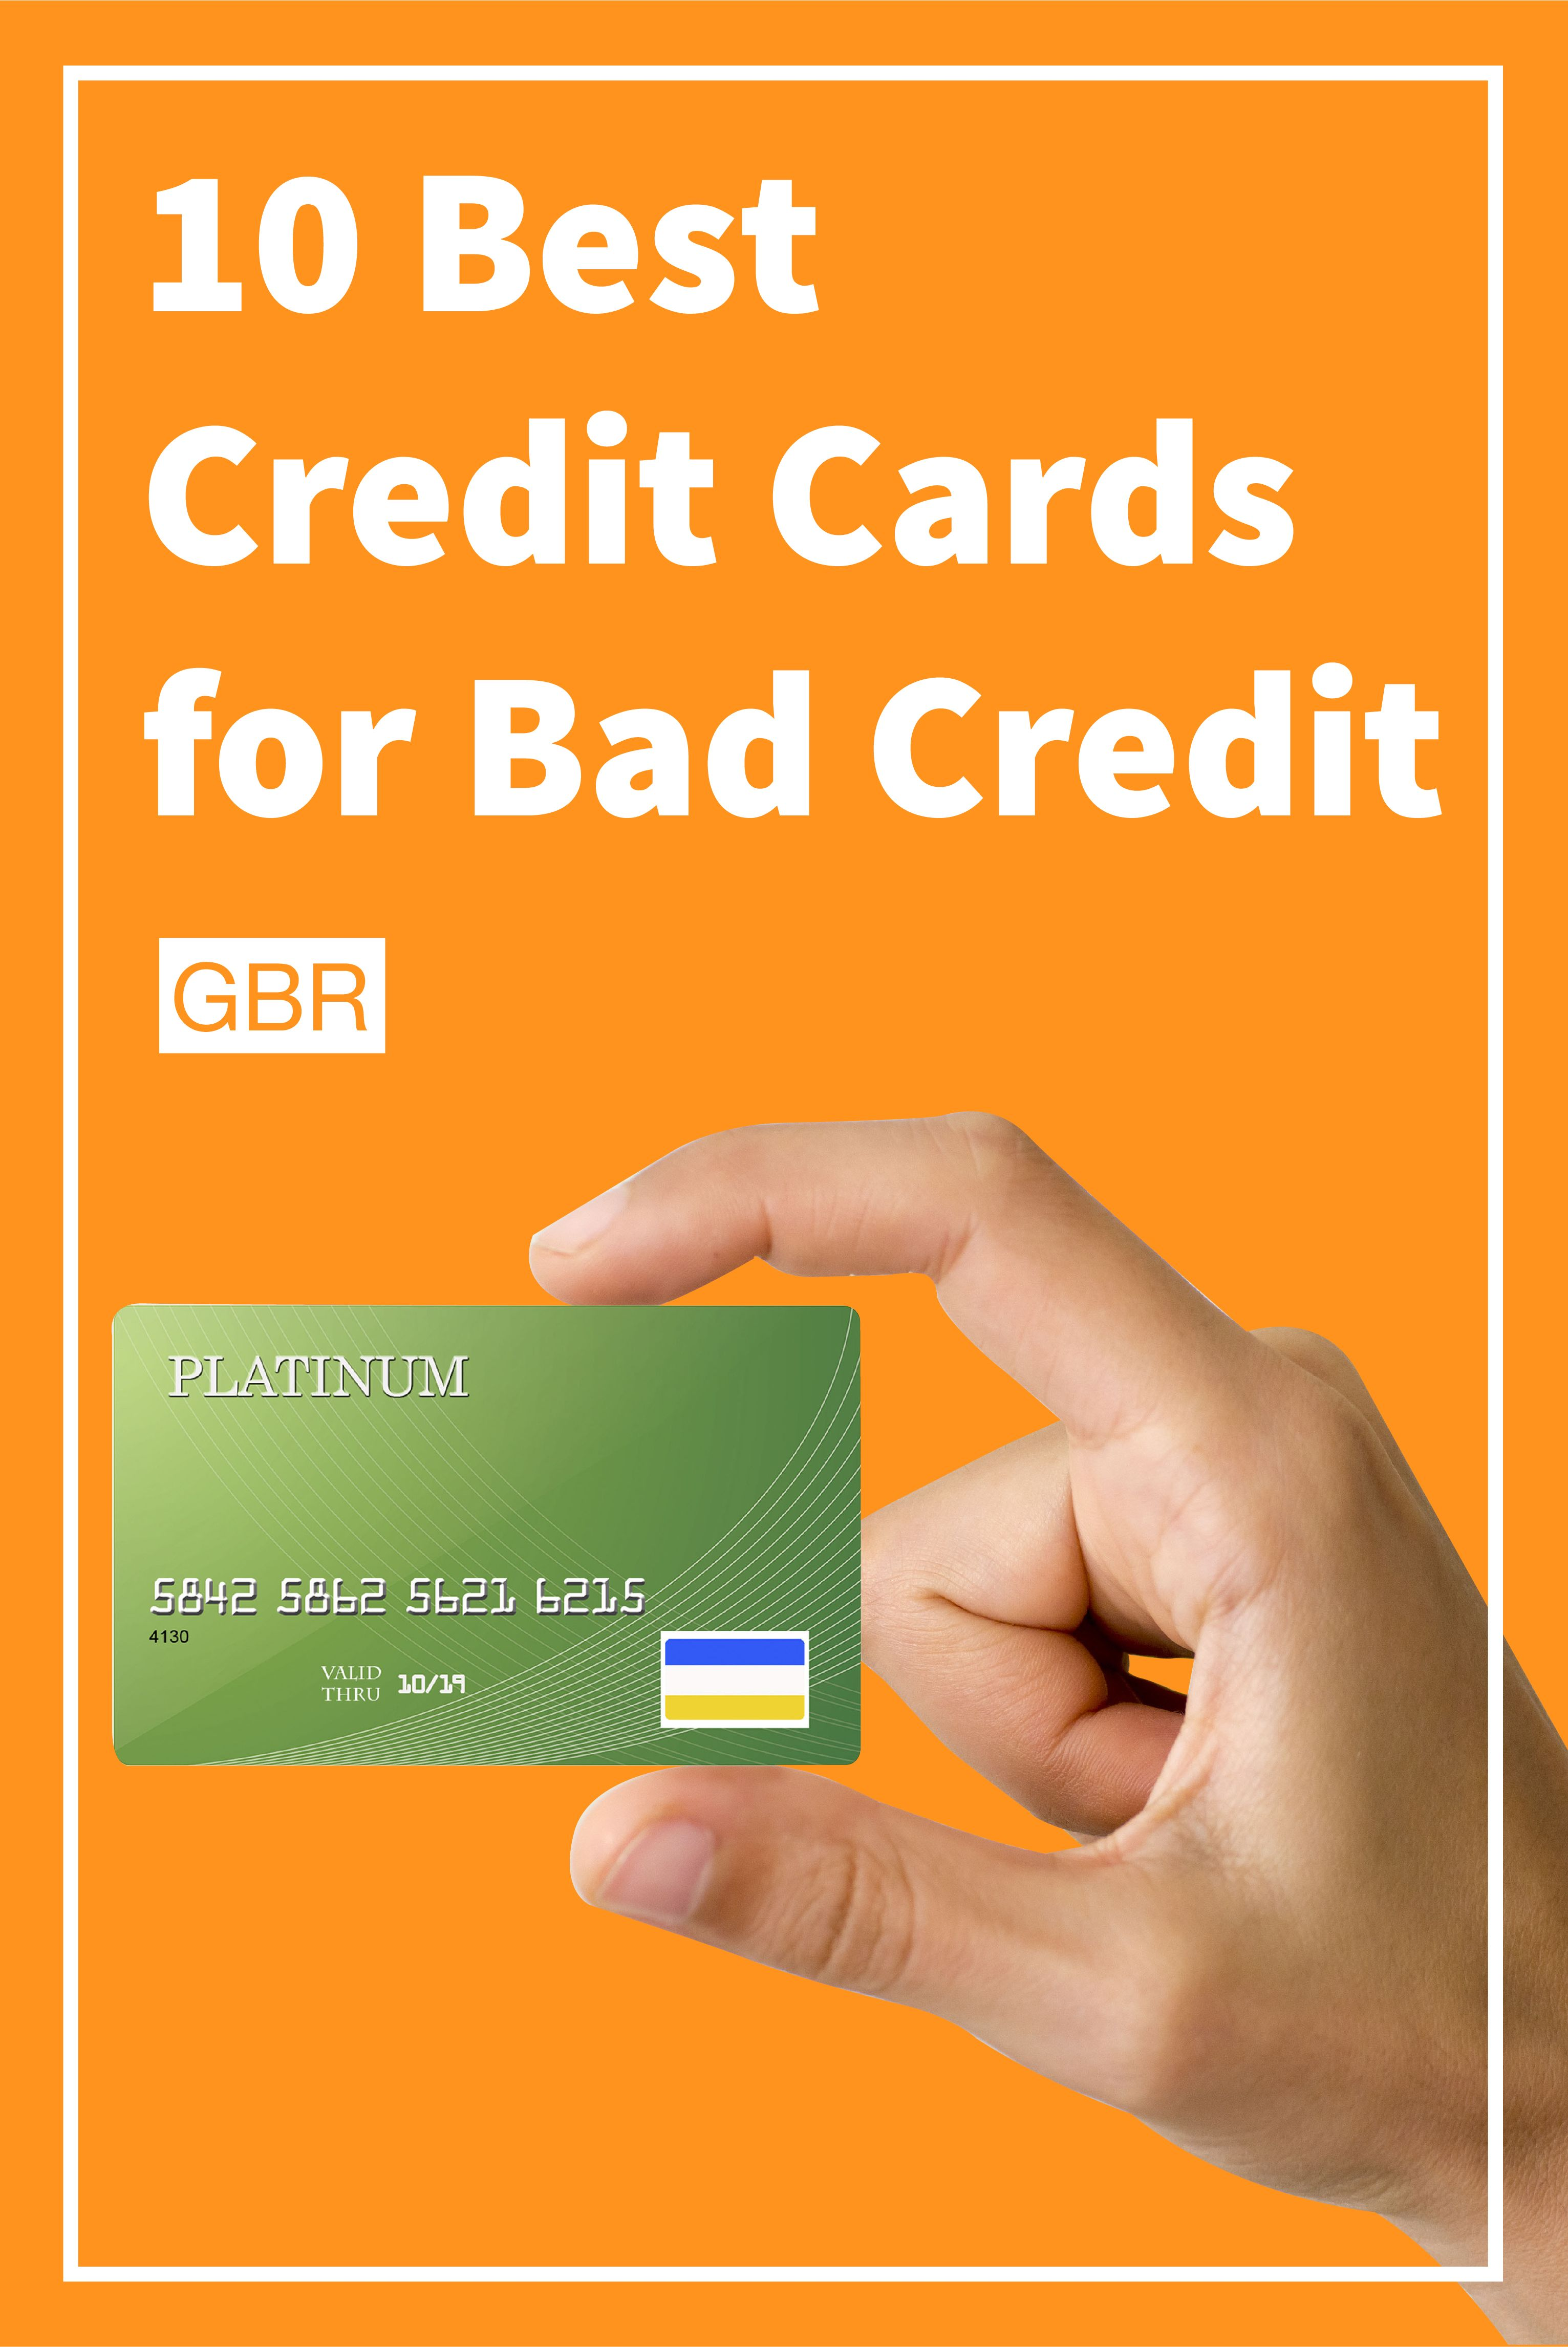 10 Best Credit Cards for Bad Credit Small business